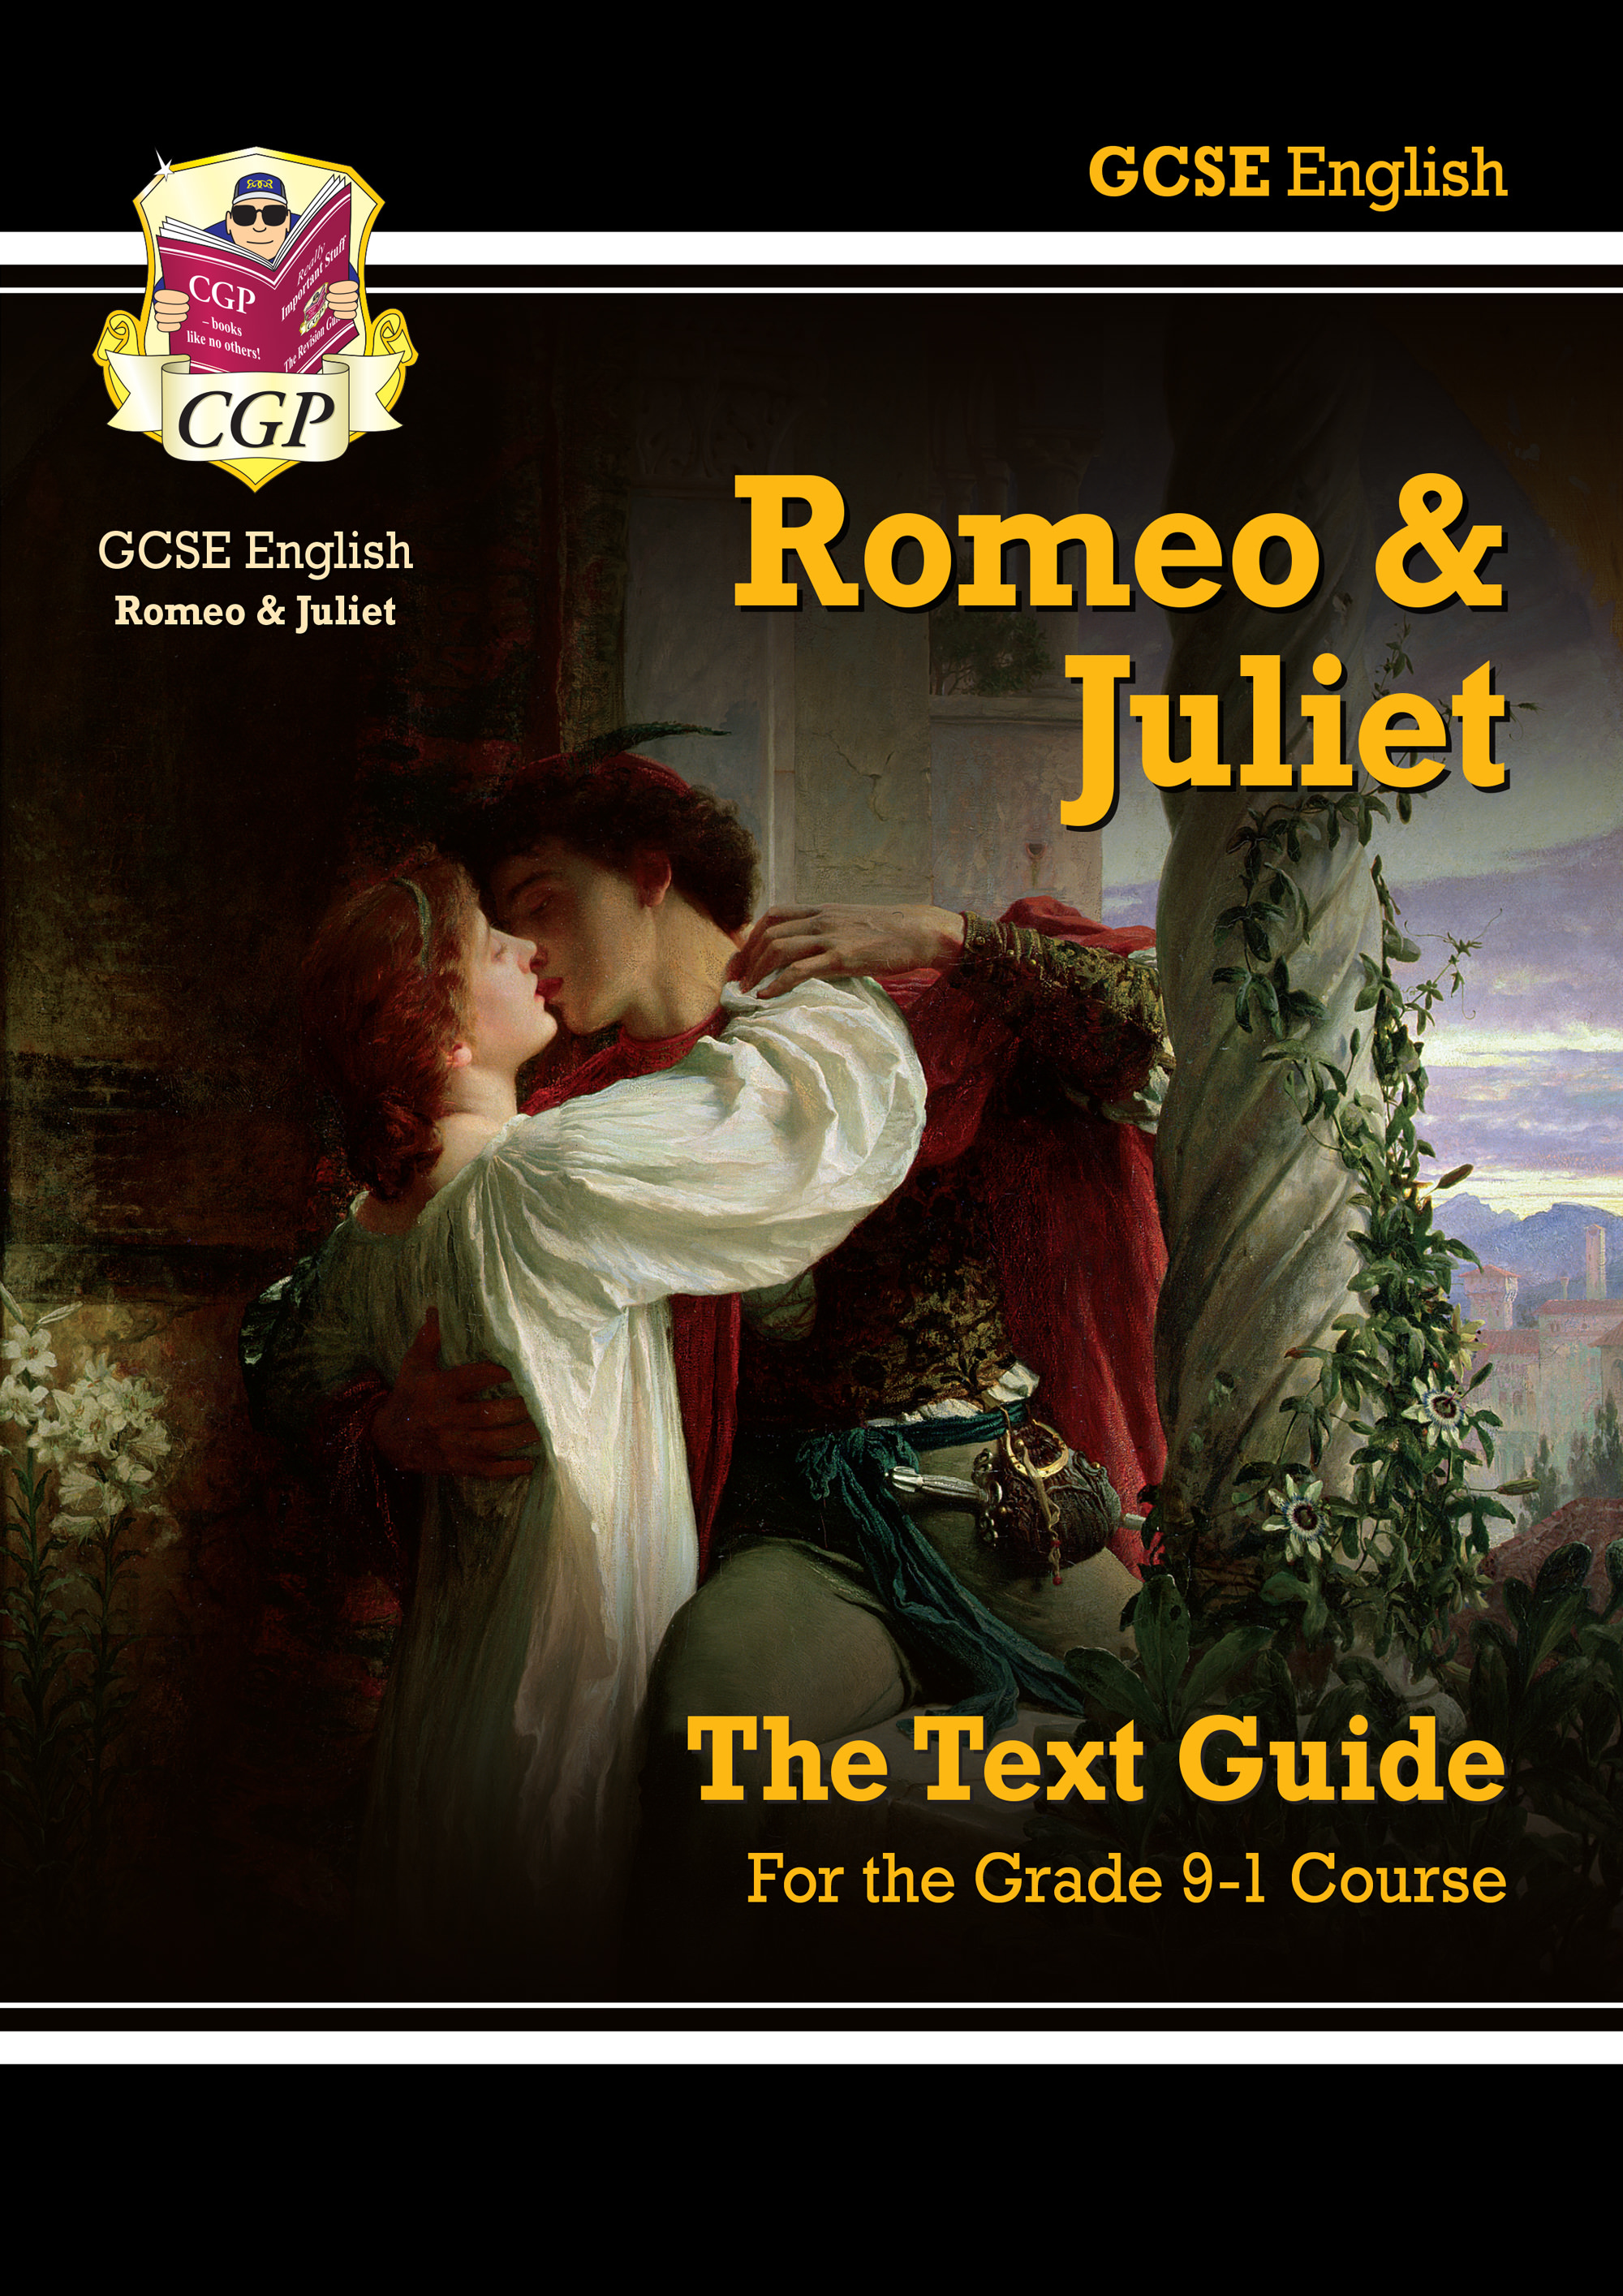 ETR44 - Grade 9-1 GCSE English Shakespeare Text Guide - Romeo & Juliet